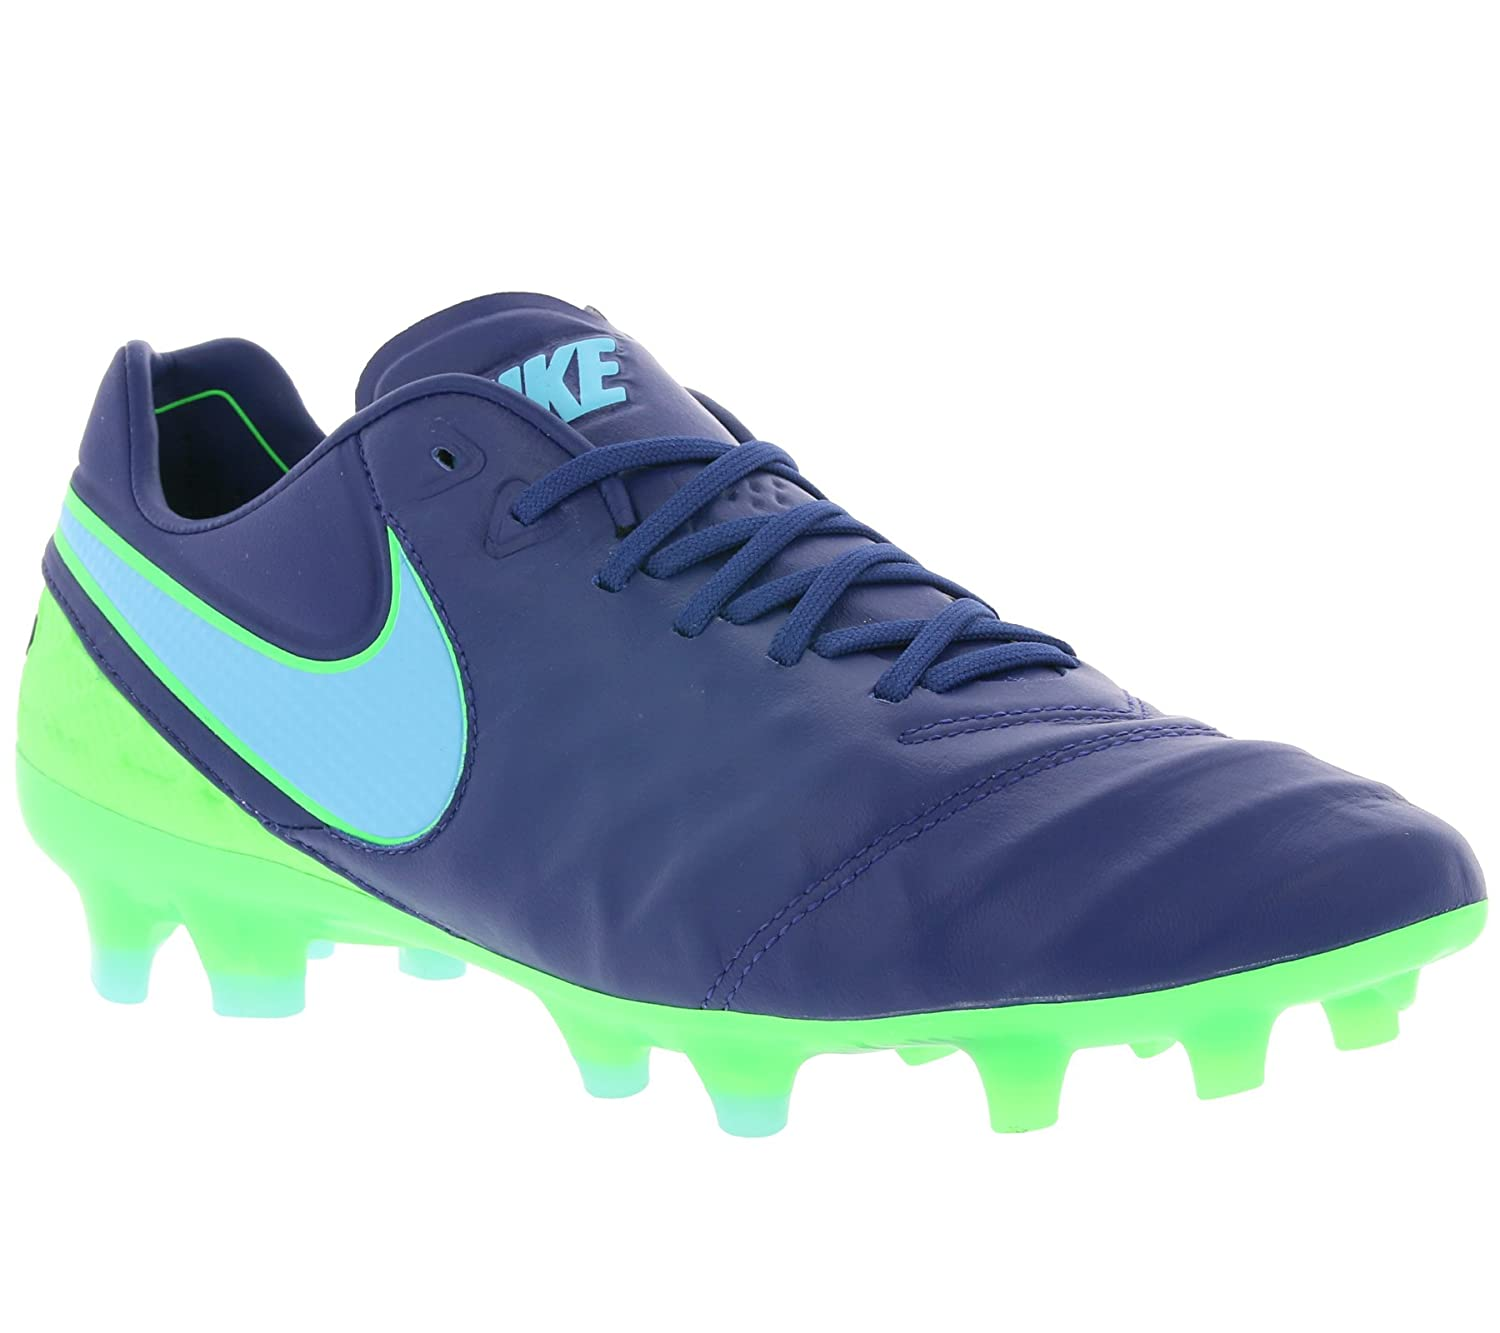 newest b2376 70f08 Nike Mens Tiempo Leather Cleats Soccer Shoes Green 9 Medium ...